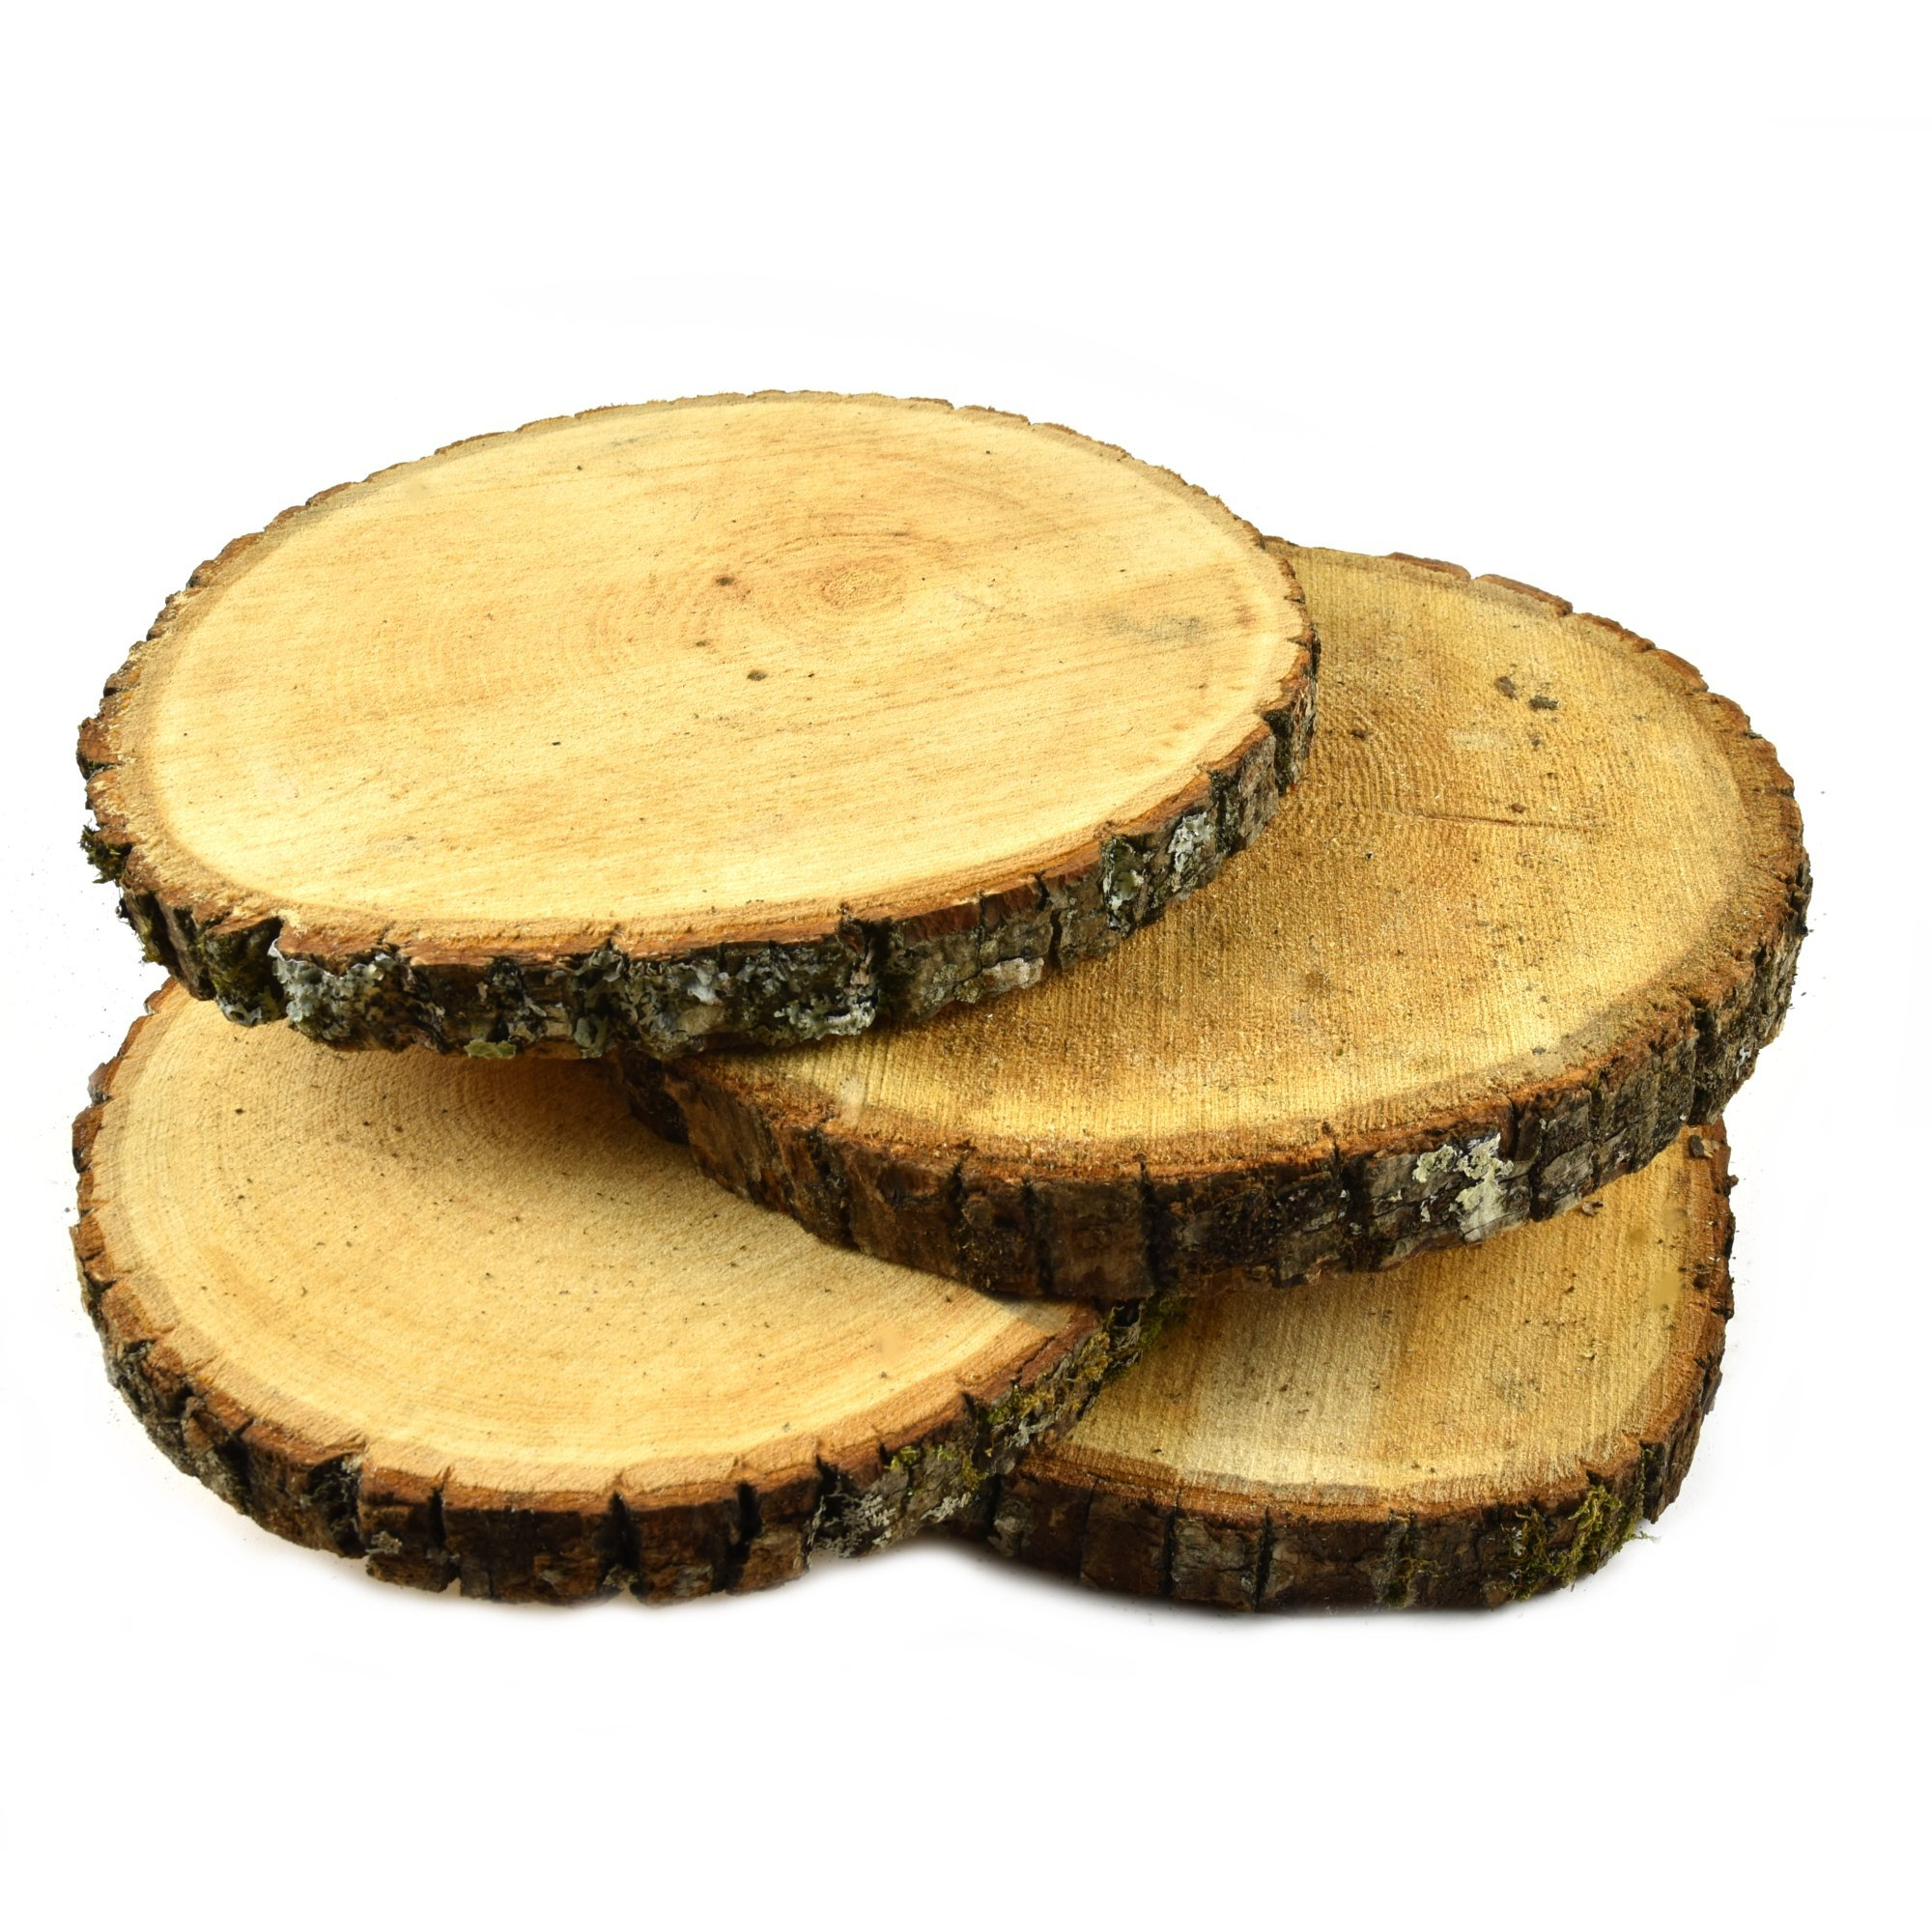 Natural UNTREATED Basswood SLABS 9'' to 11'' Diameter (Large) - Excellent for Weddings, centerpieces, DIY Projects, Table Chargers or Decoration! by Woodland Decor (Set of Four SLABS)